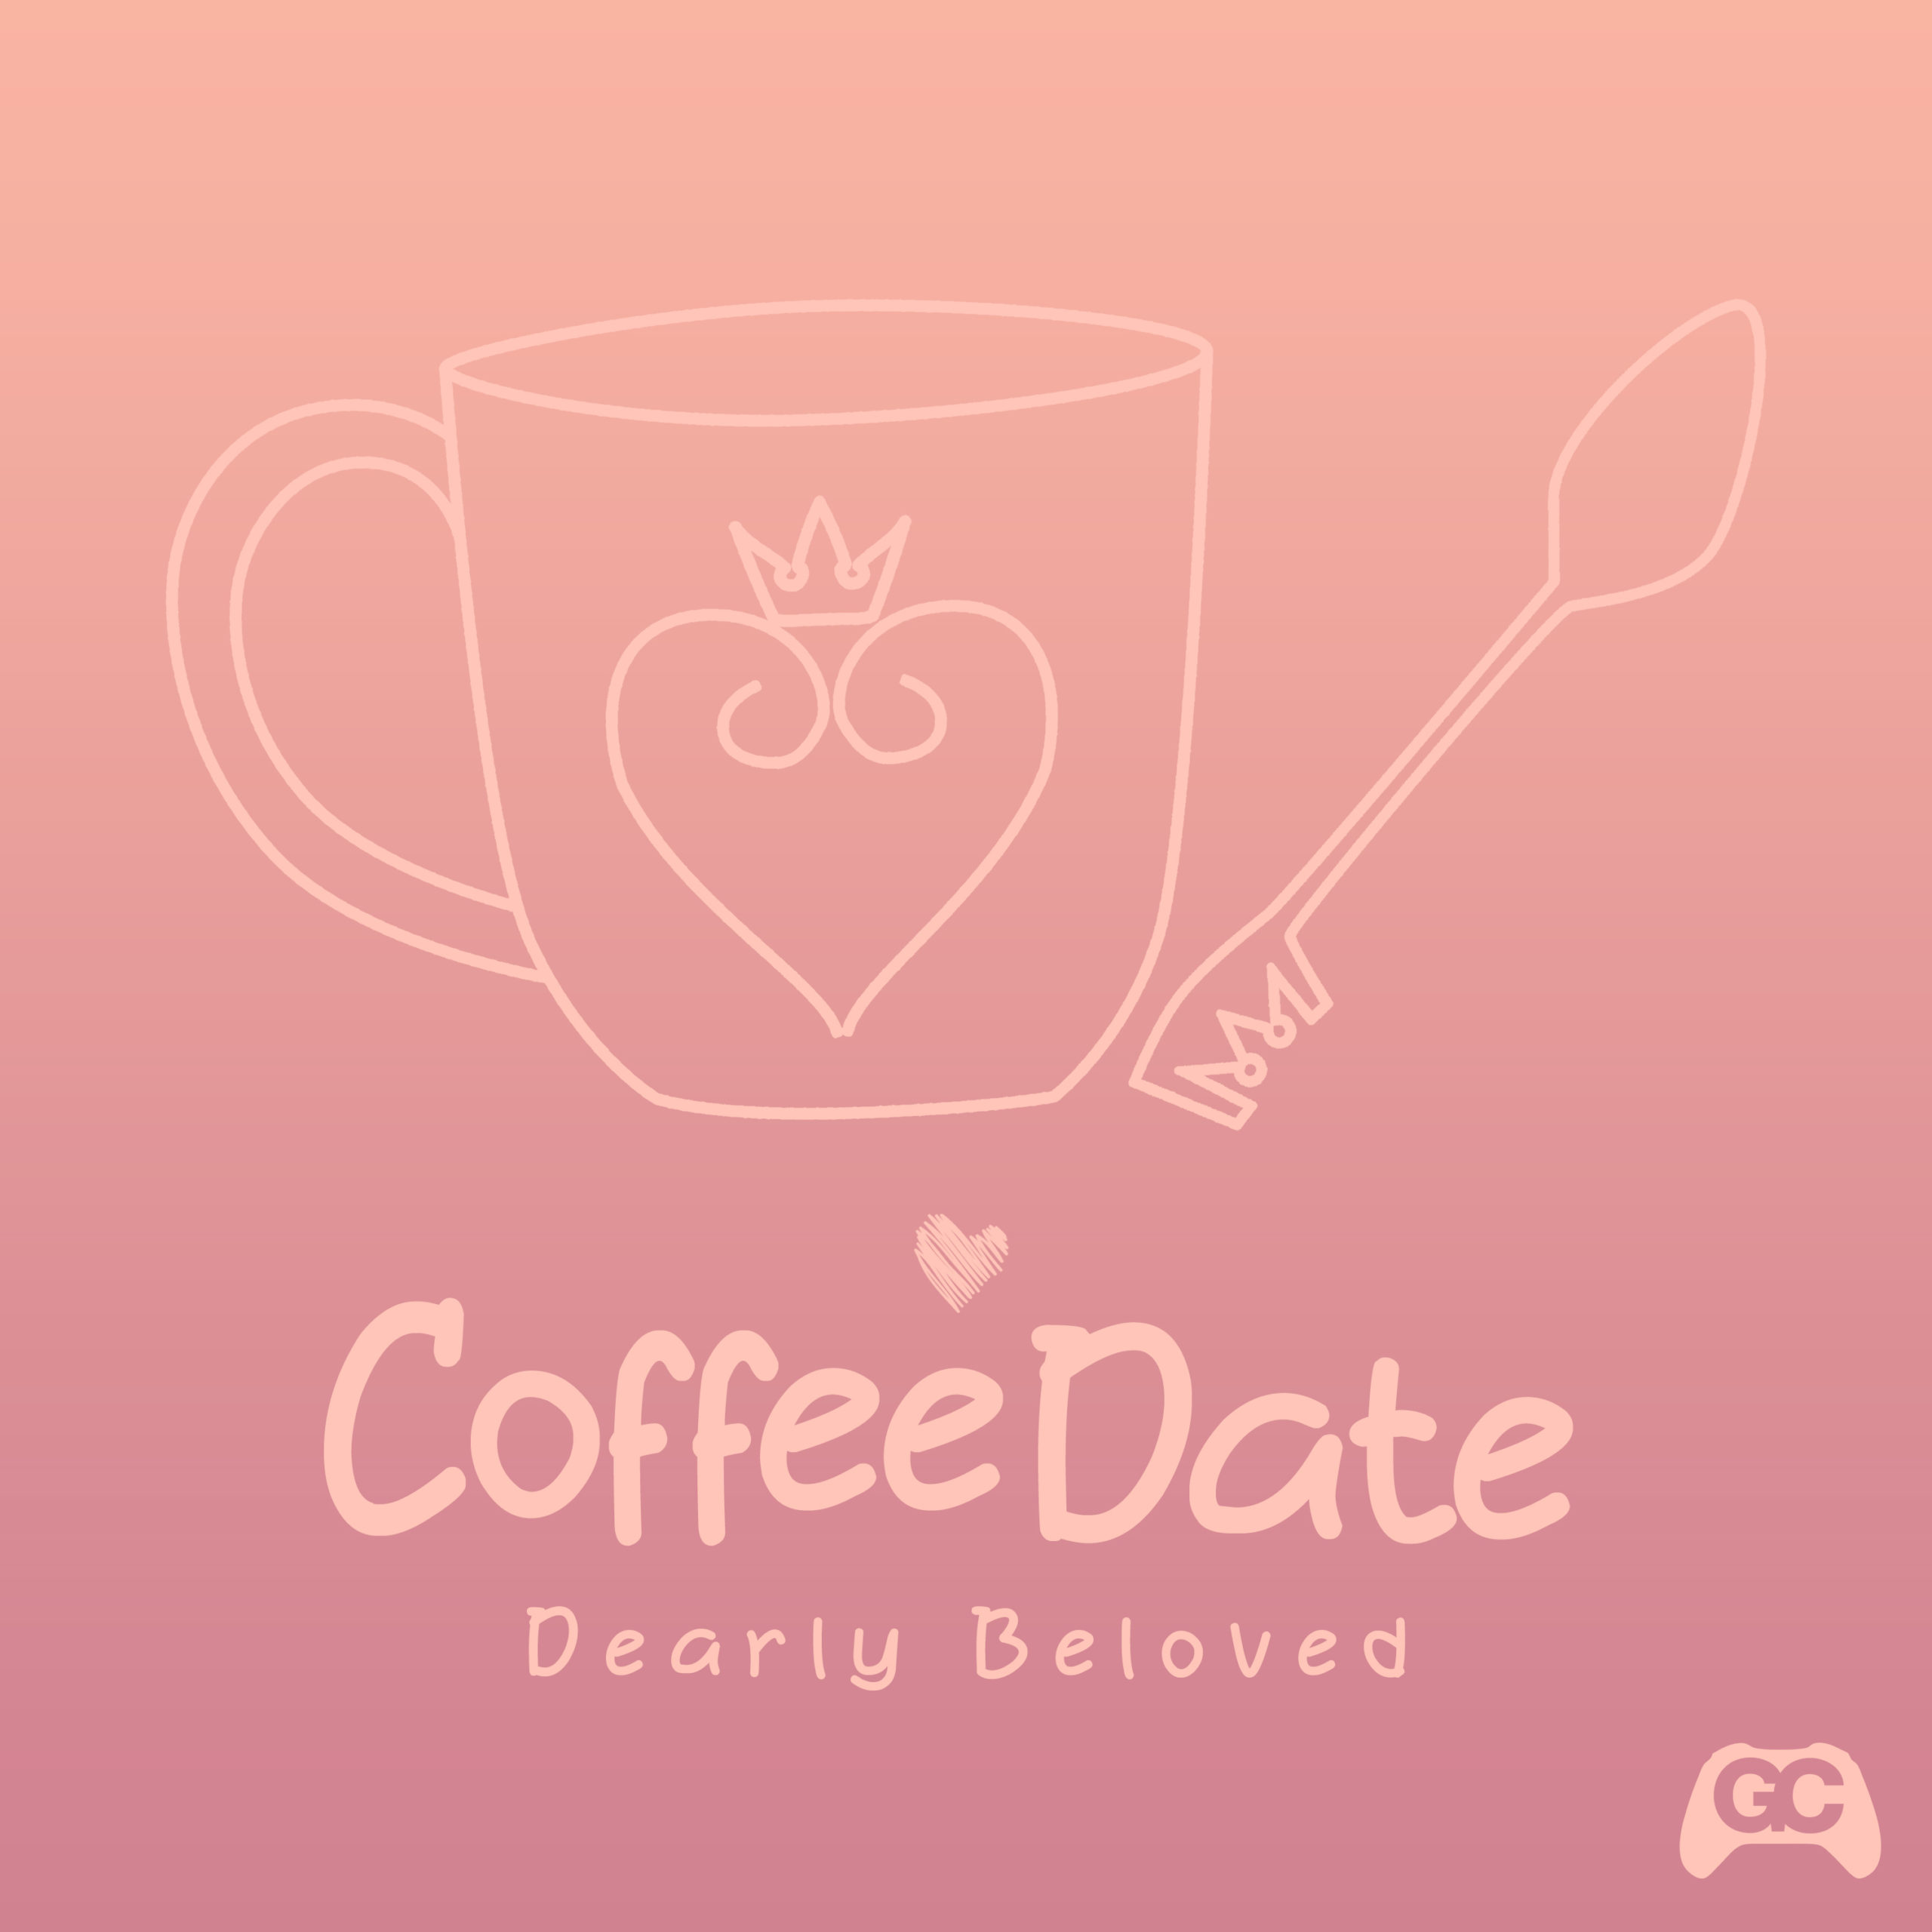 Coffee Date – Dearly Beloved